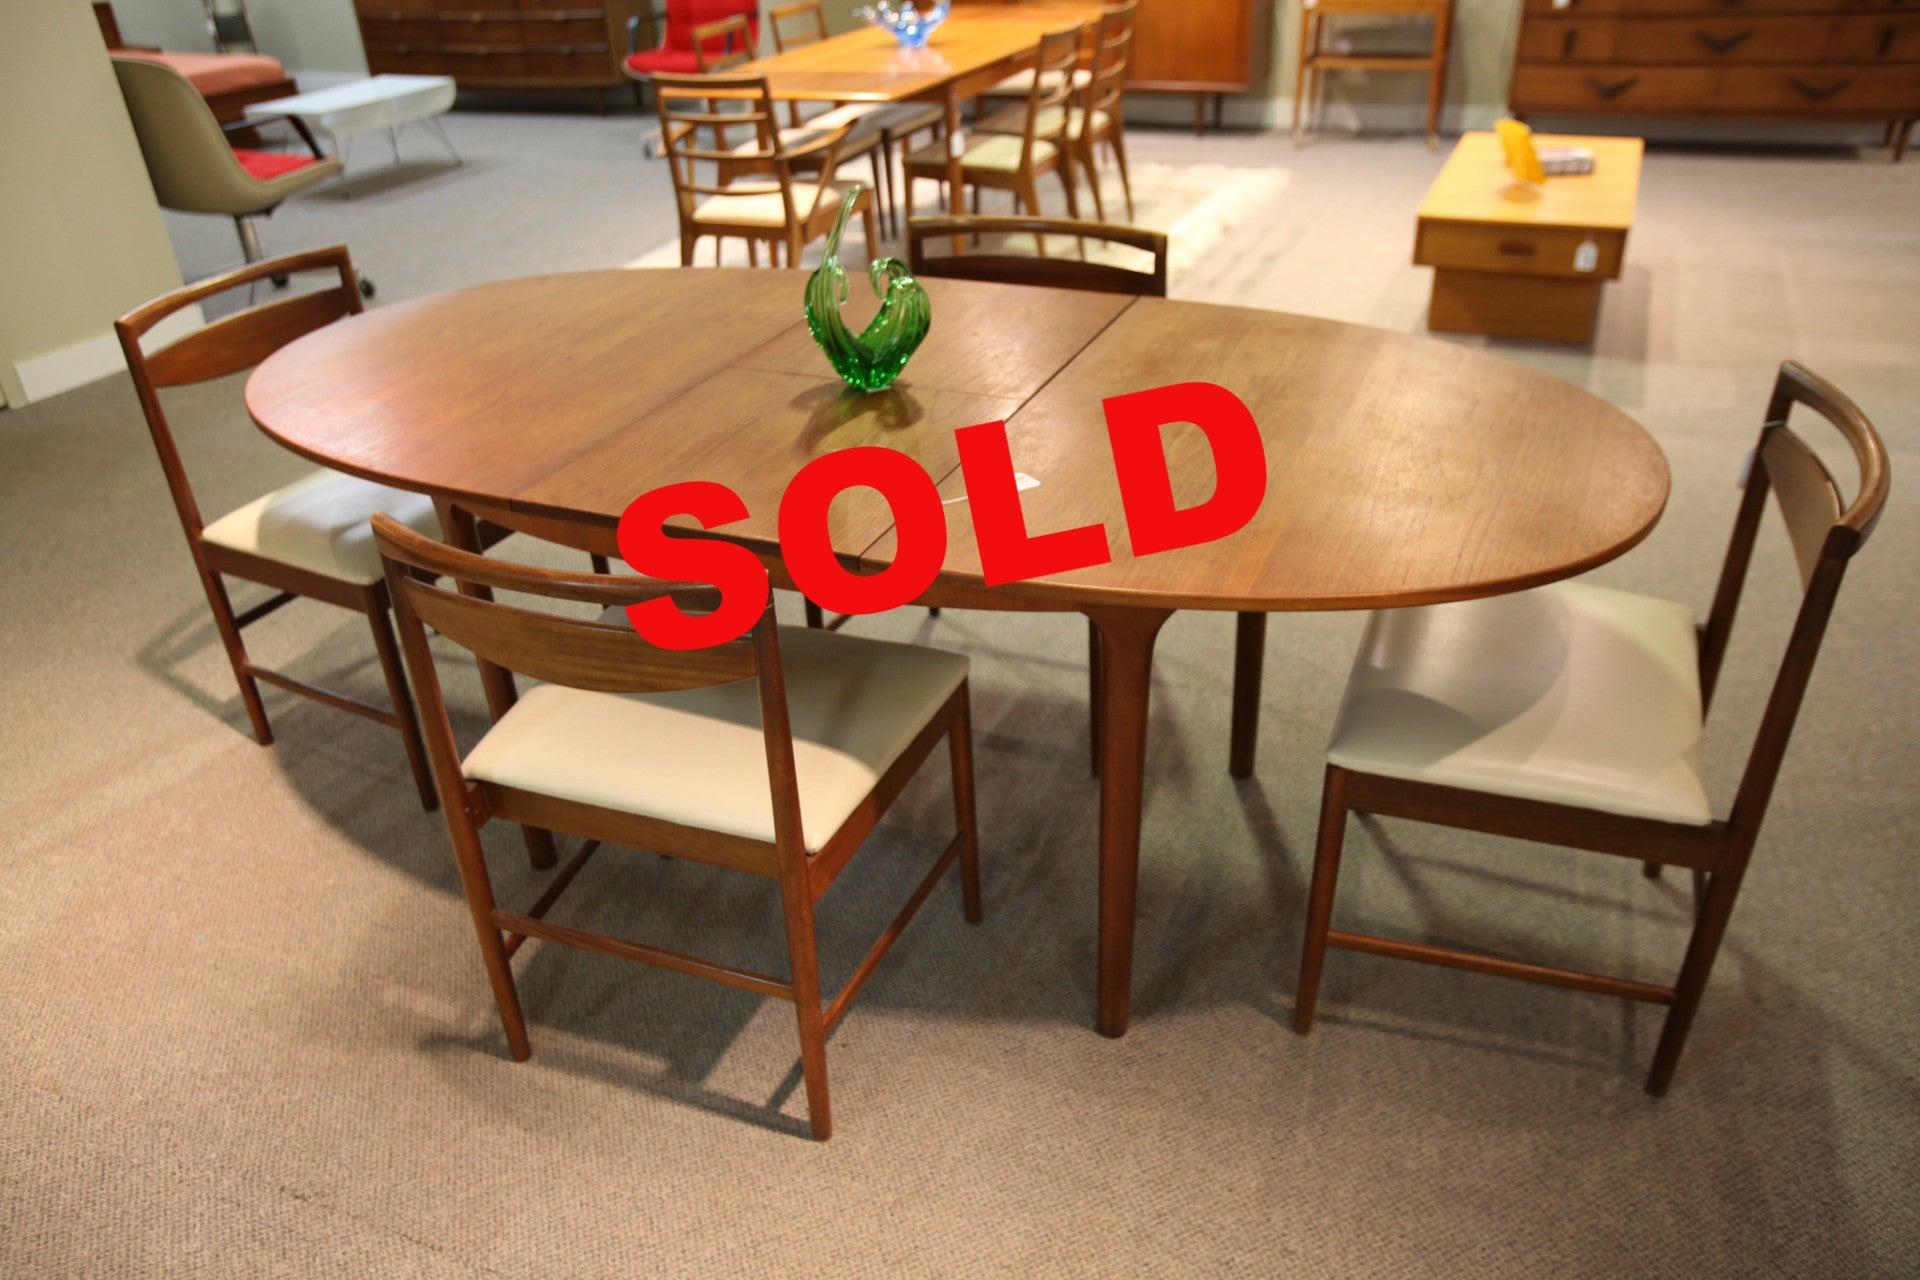 A.H. McIntyre Teak Table and 4 Chairs (Scotland)